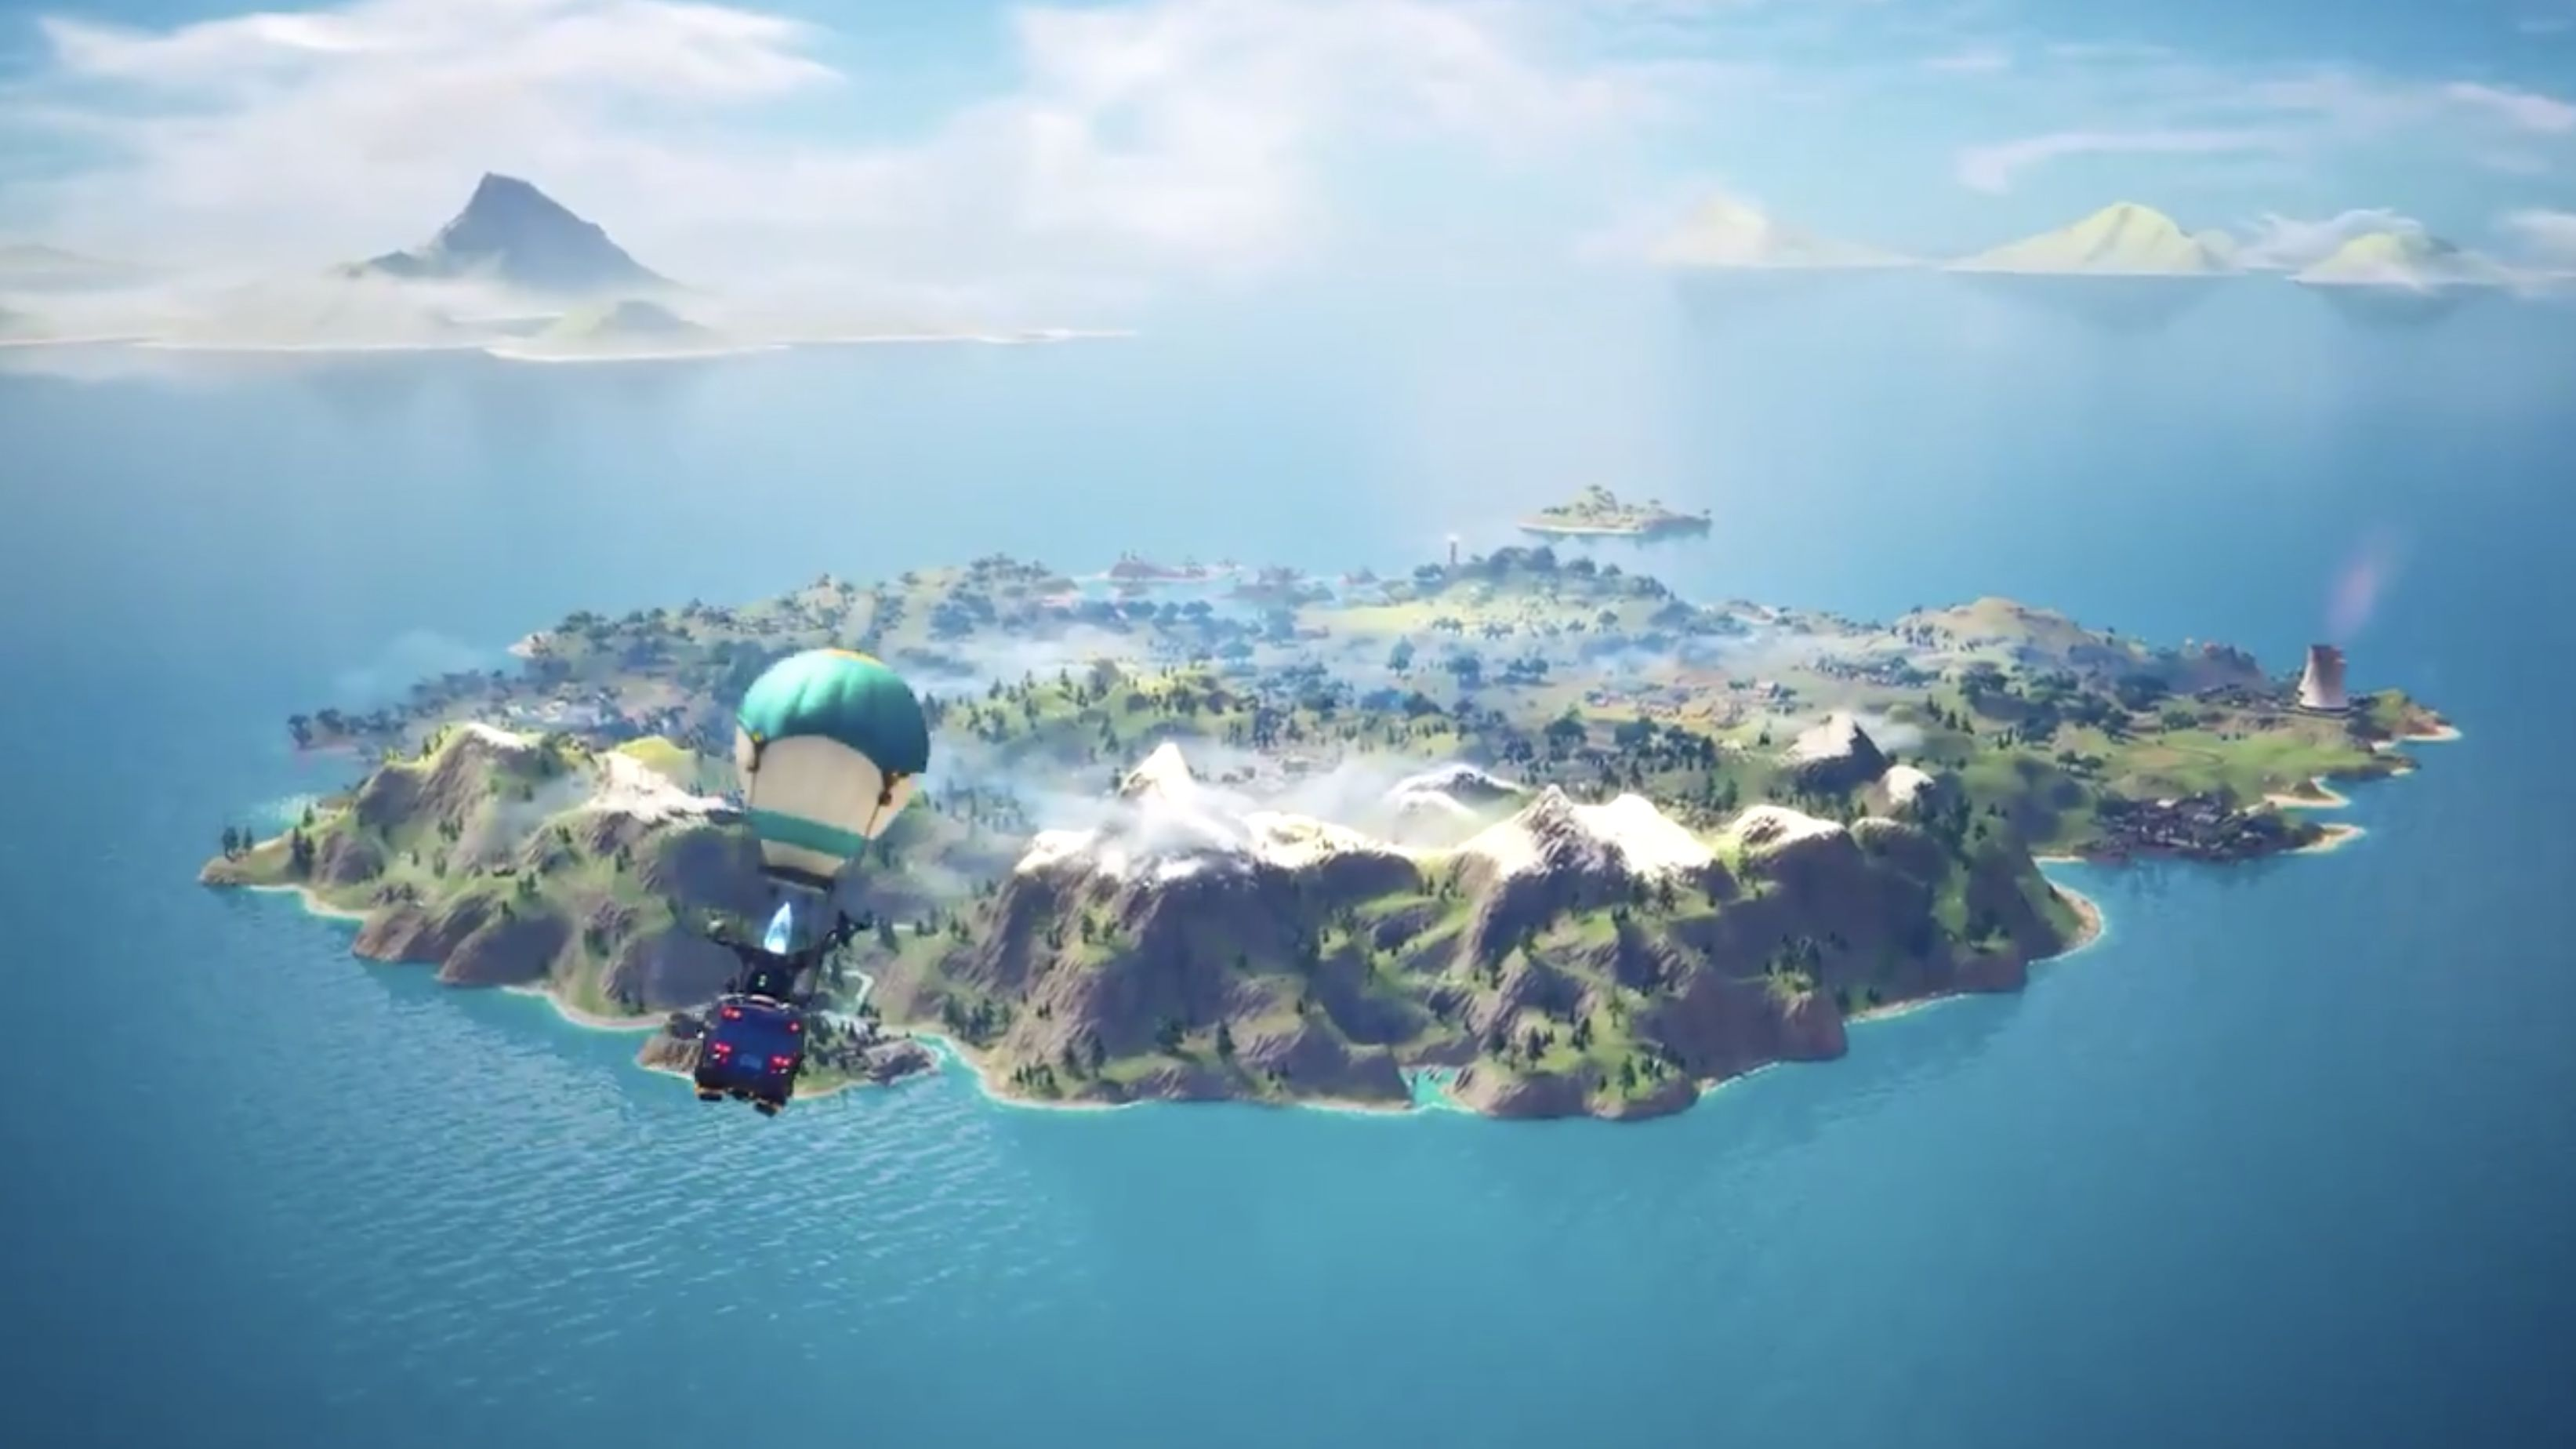 Fortnite Chapter 2 Video Game Hd Wallpapers Games Wallpapers Fortnite Wallpapers Fortnite Chapter 2 Wallpapers 4k Wallpap Fortnite Epic Games Going Fishing